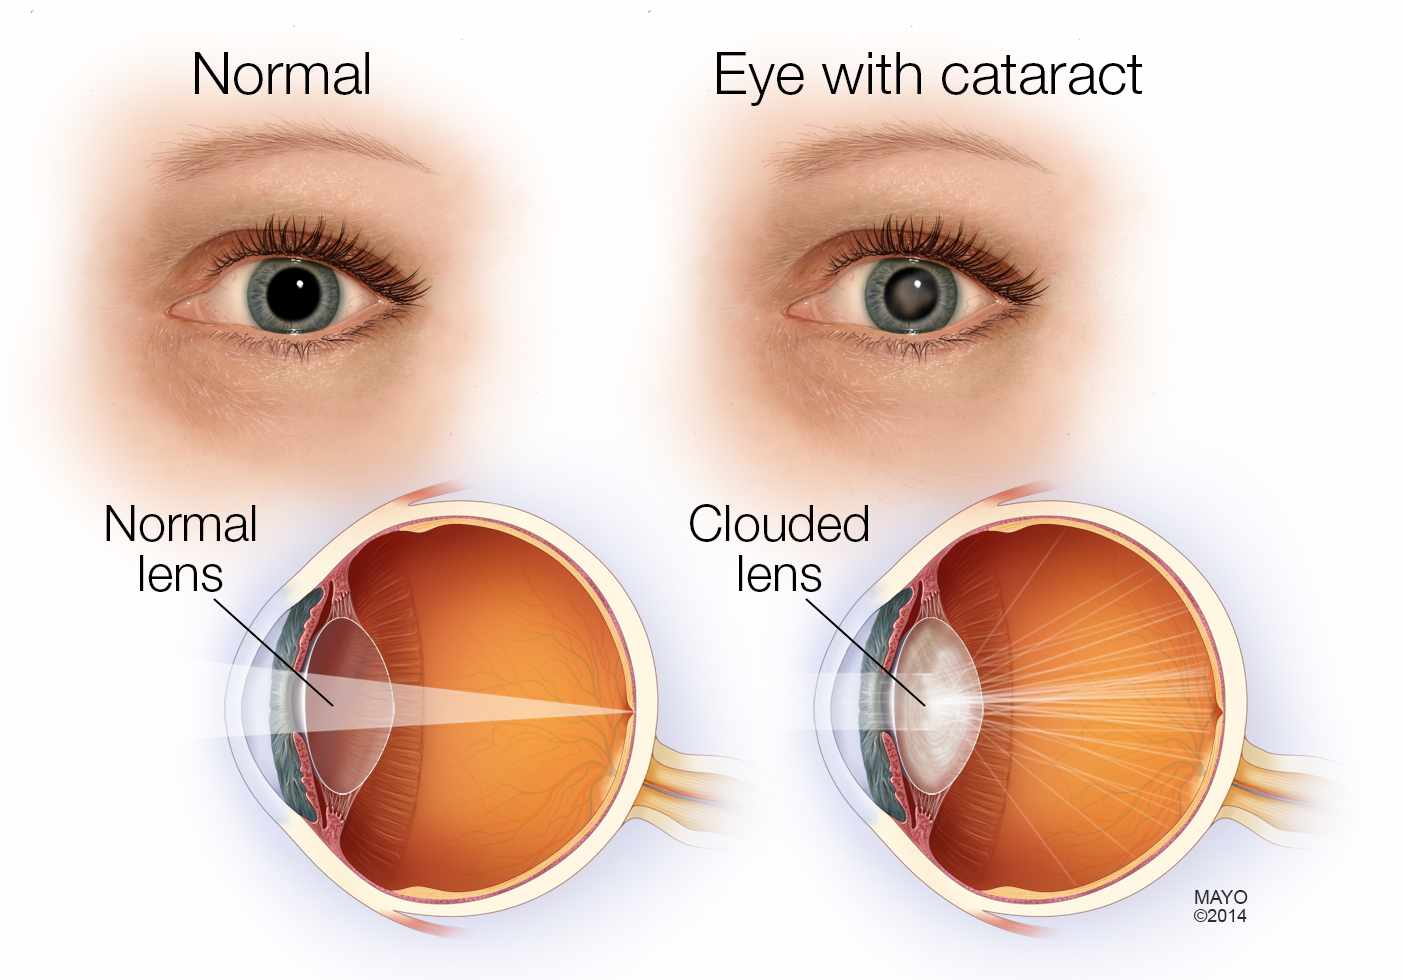 Cataract Symptoms & Natural Treatments That Improved eye Vision